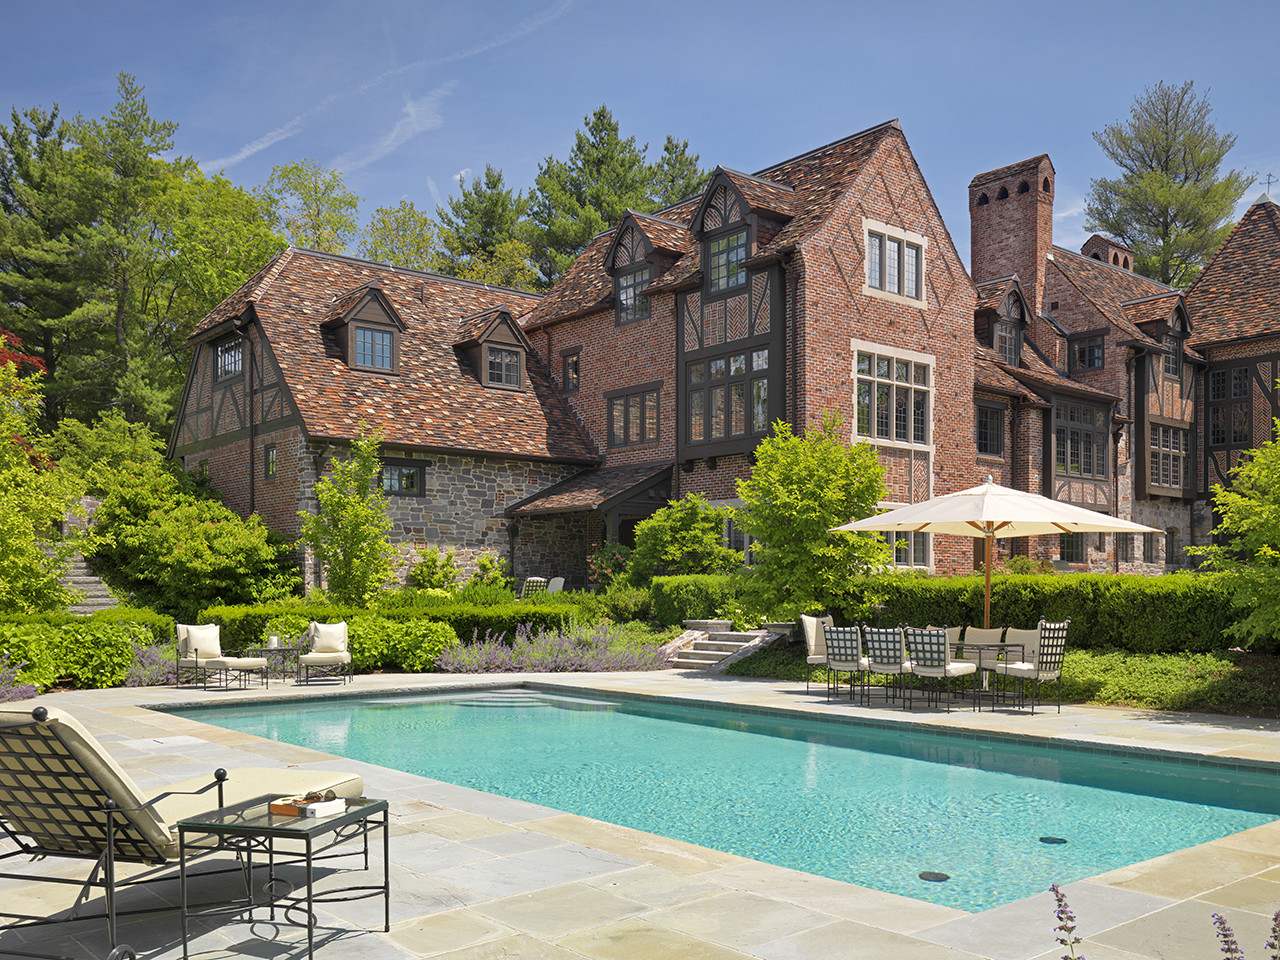 Tudor revival house merrimack design architects pllc for Landscape design guide